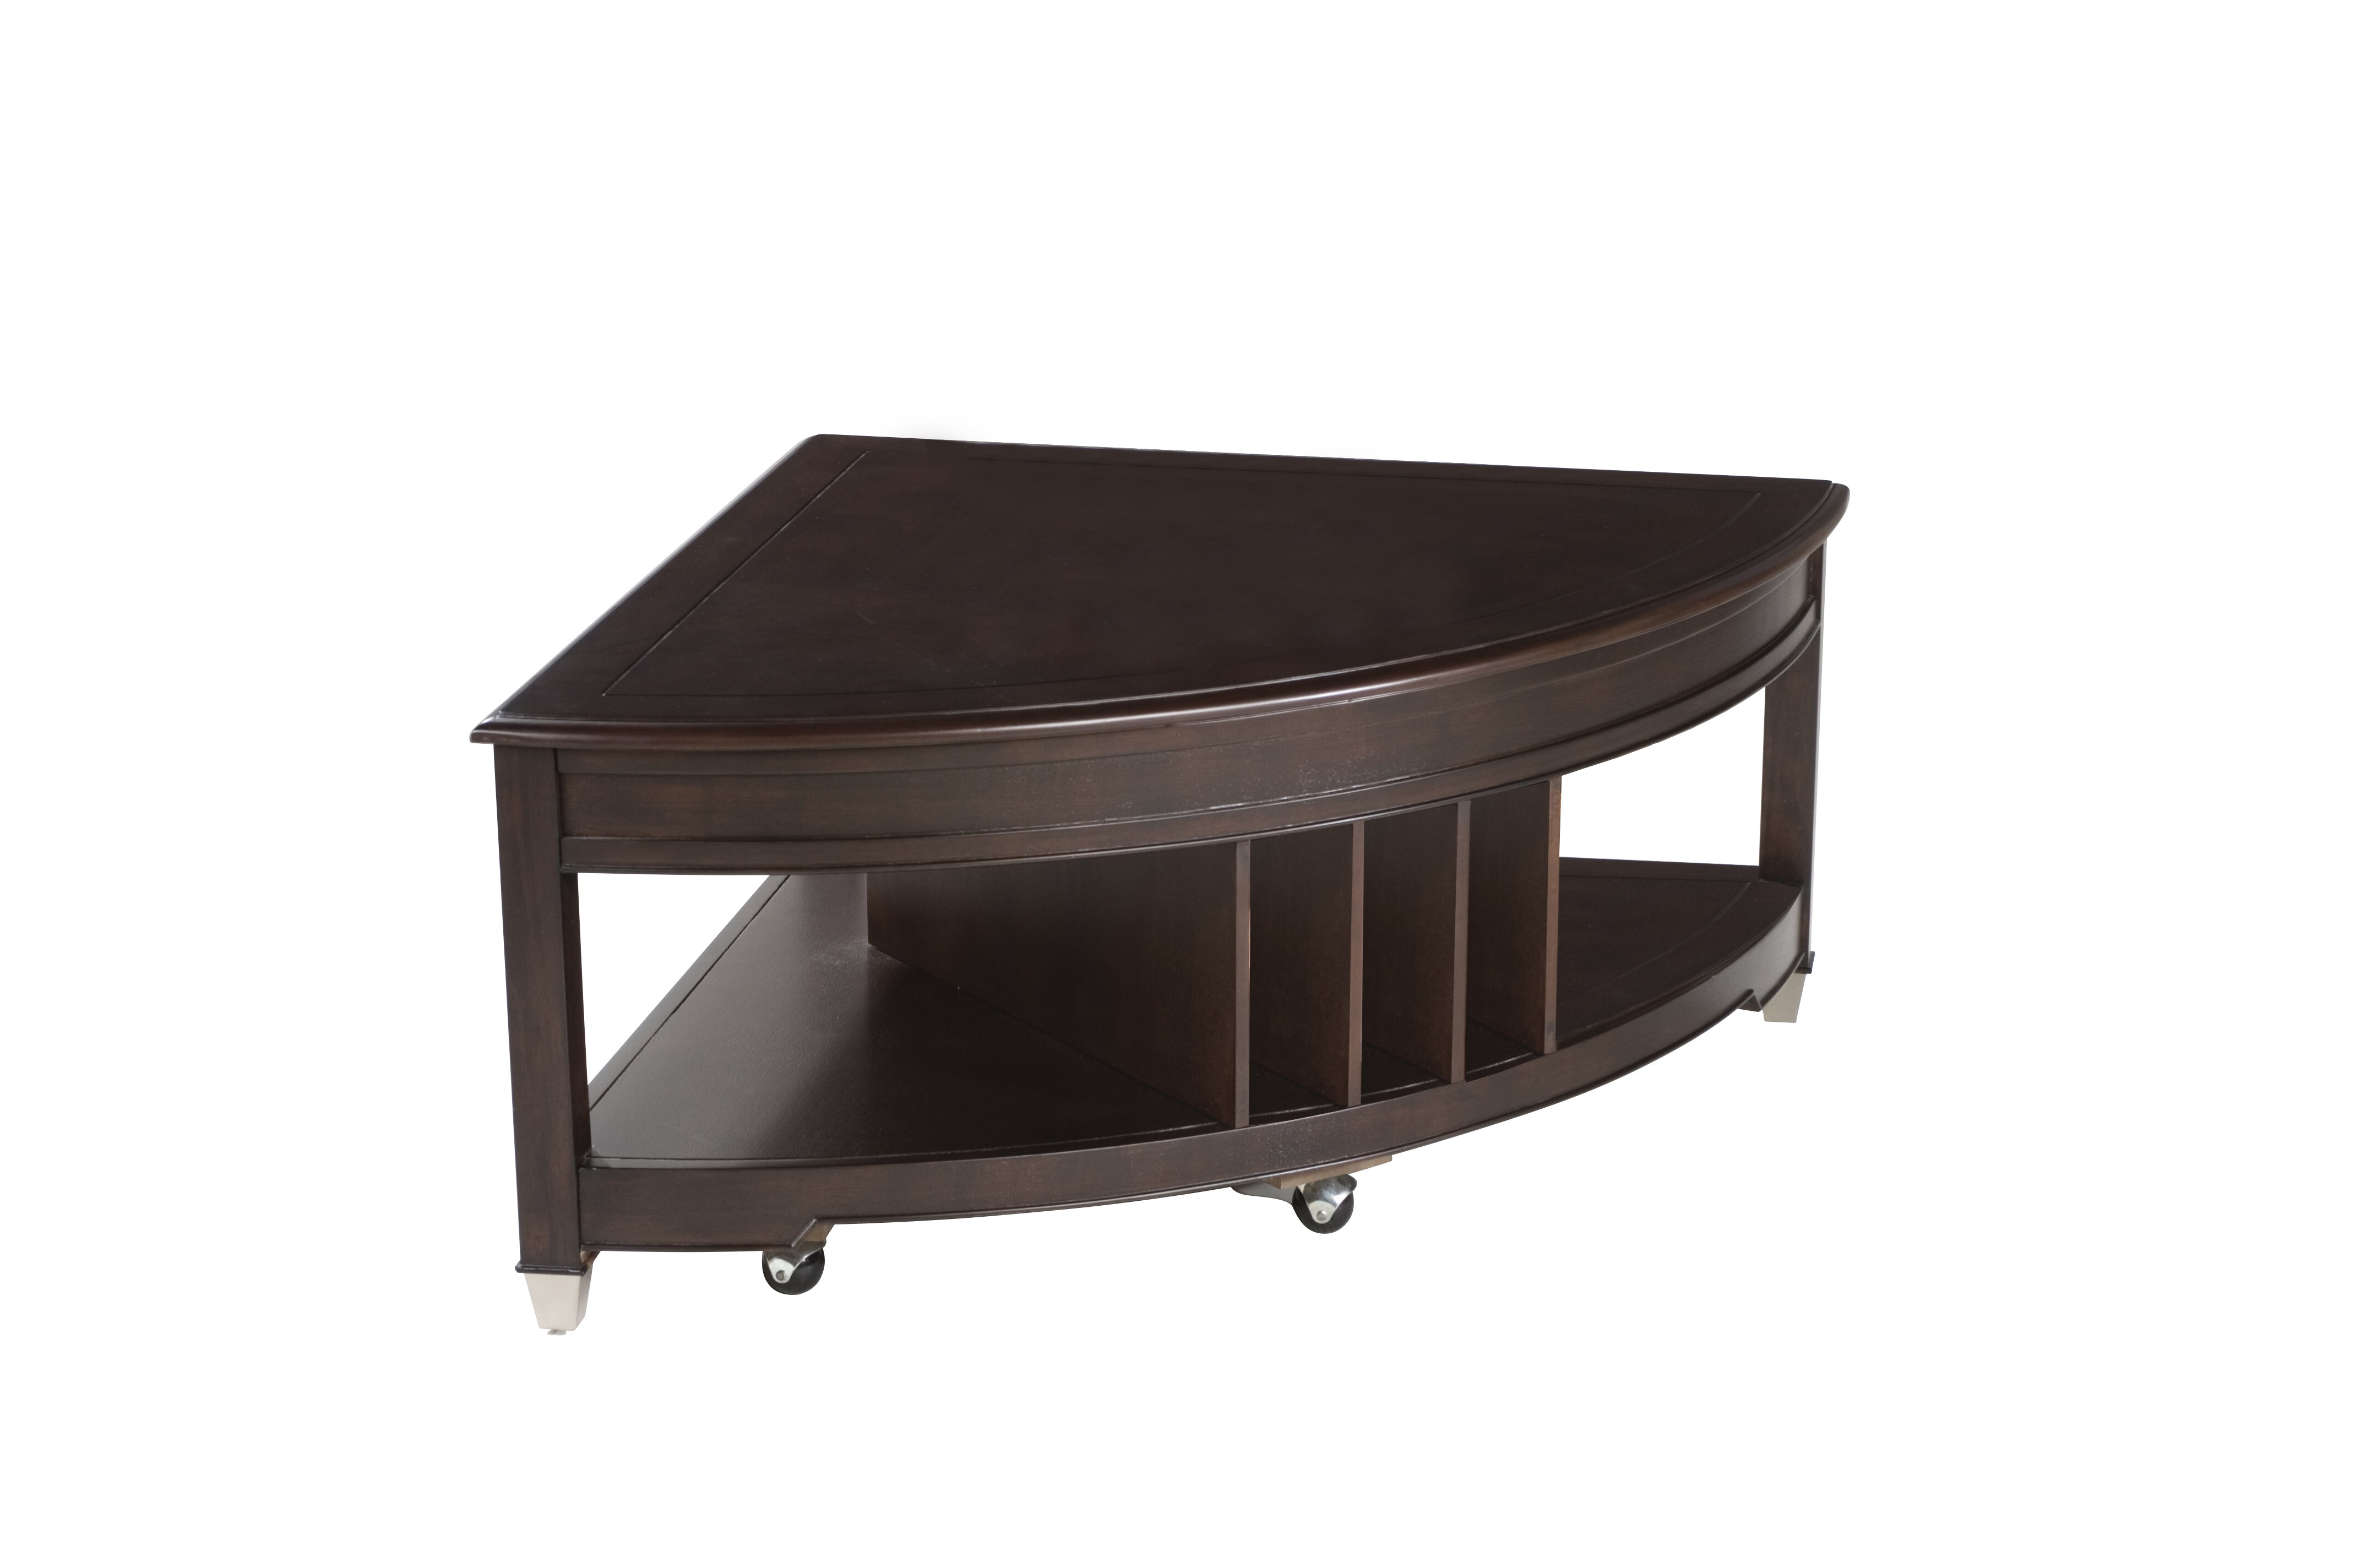 Darby Home Co Kelch Lift Top 3 Legs Coffee Table With Storage Reviews Wayfair